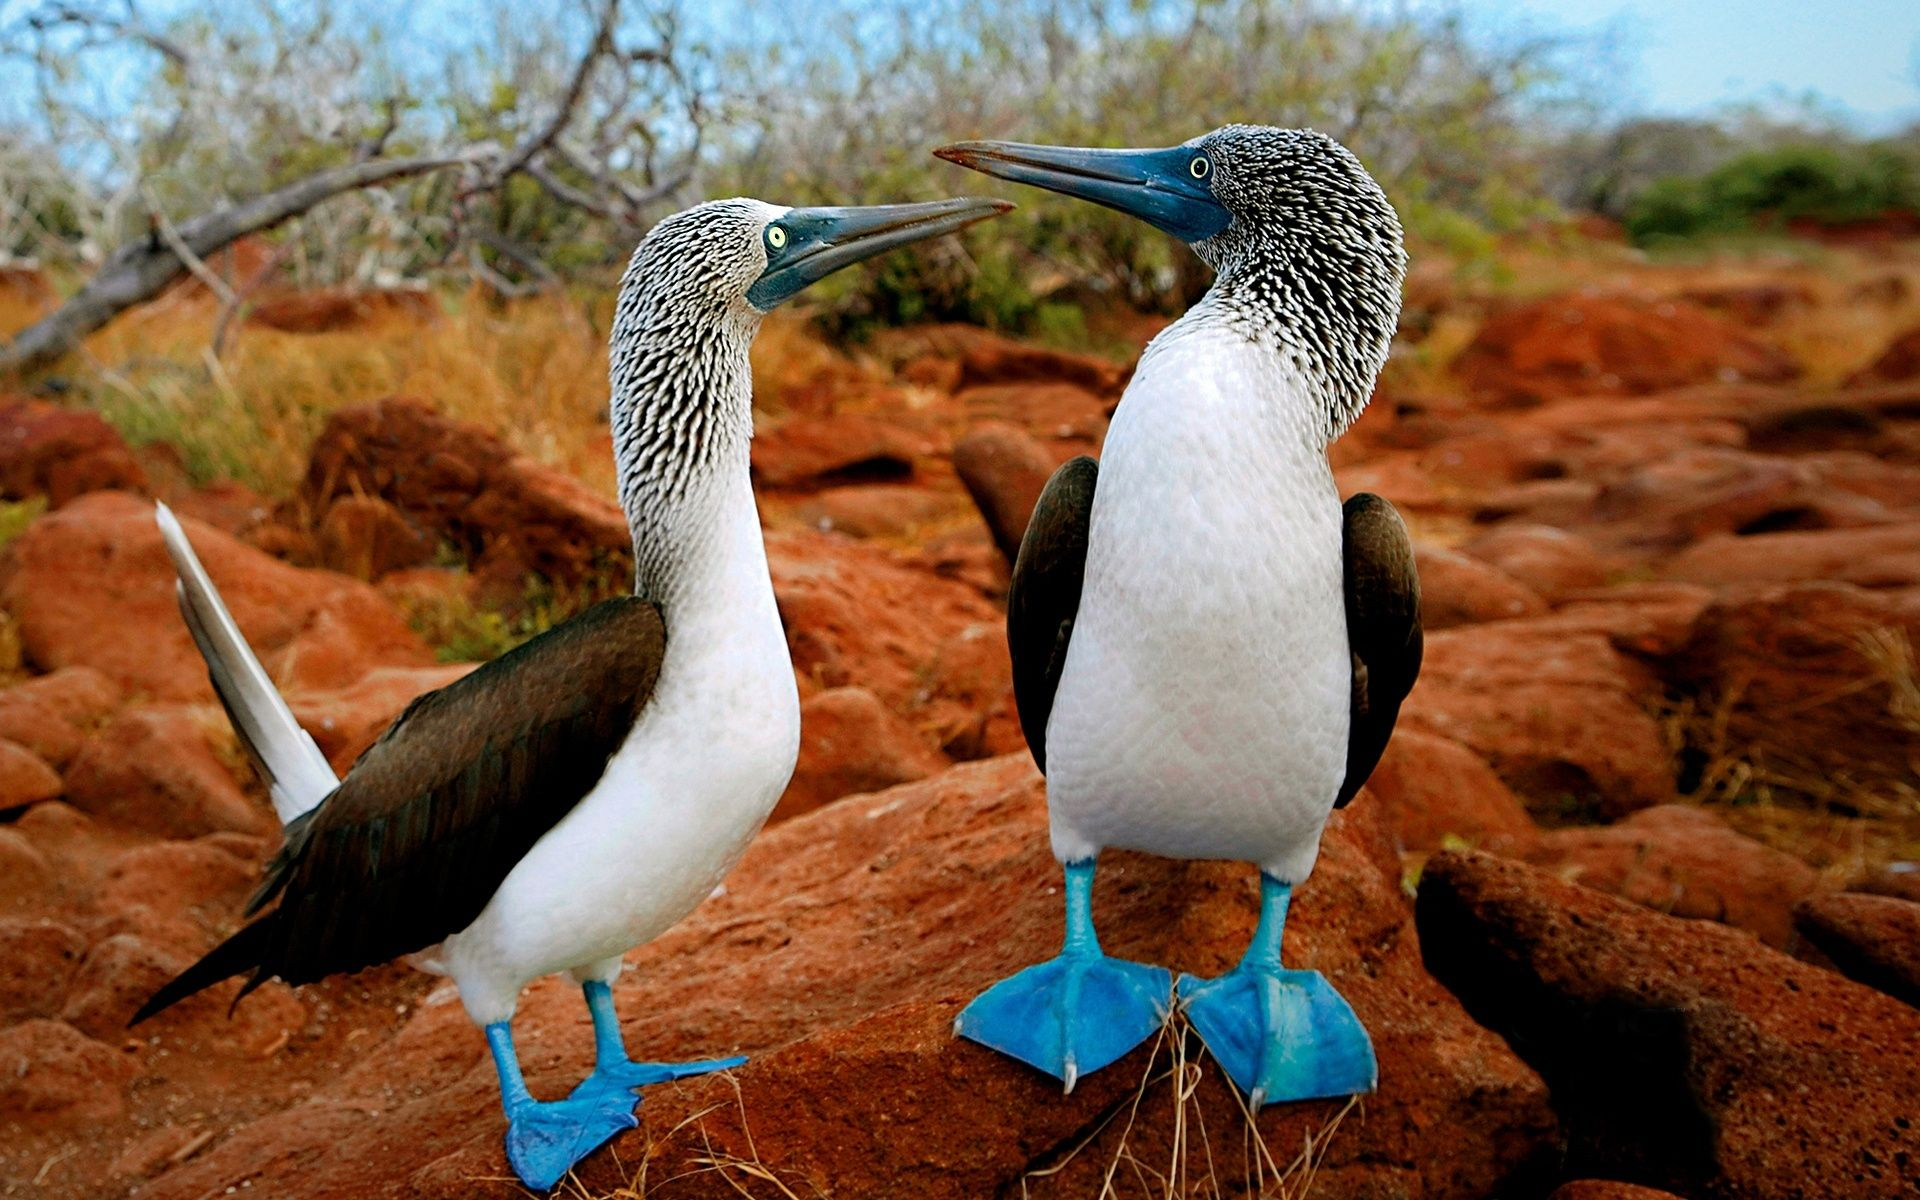 Galapagos Blue footed boobies.